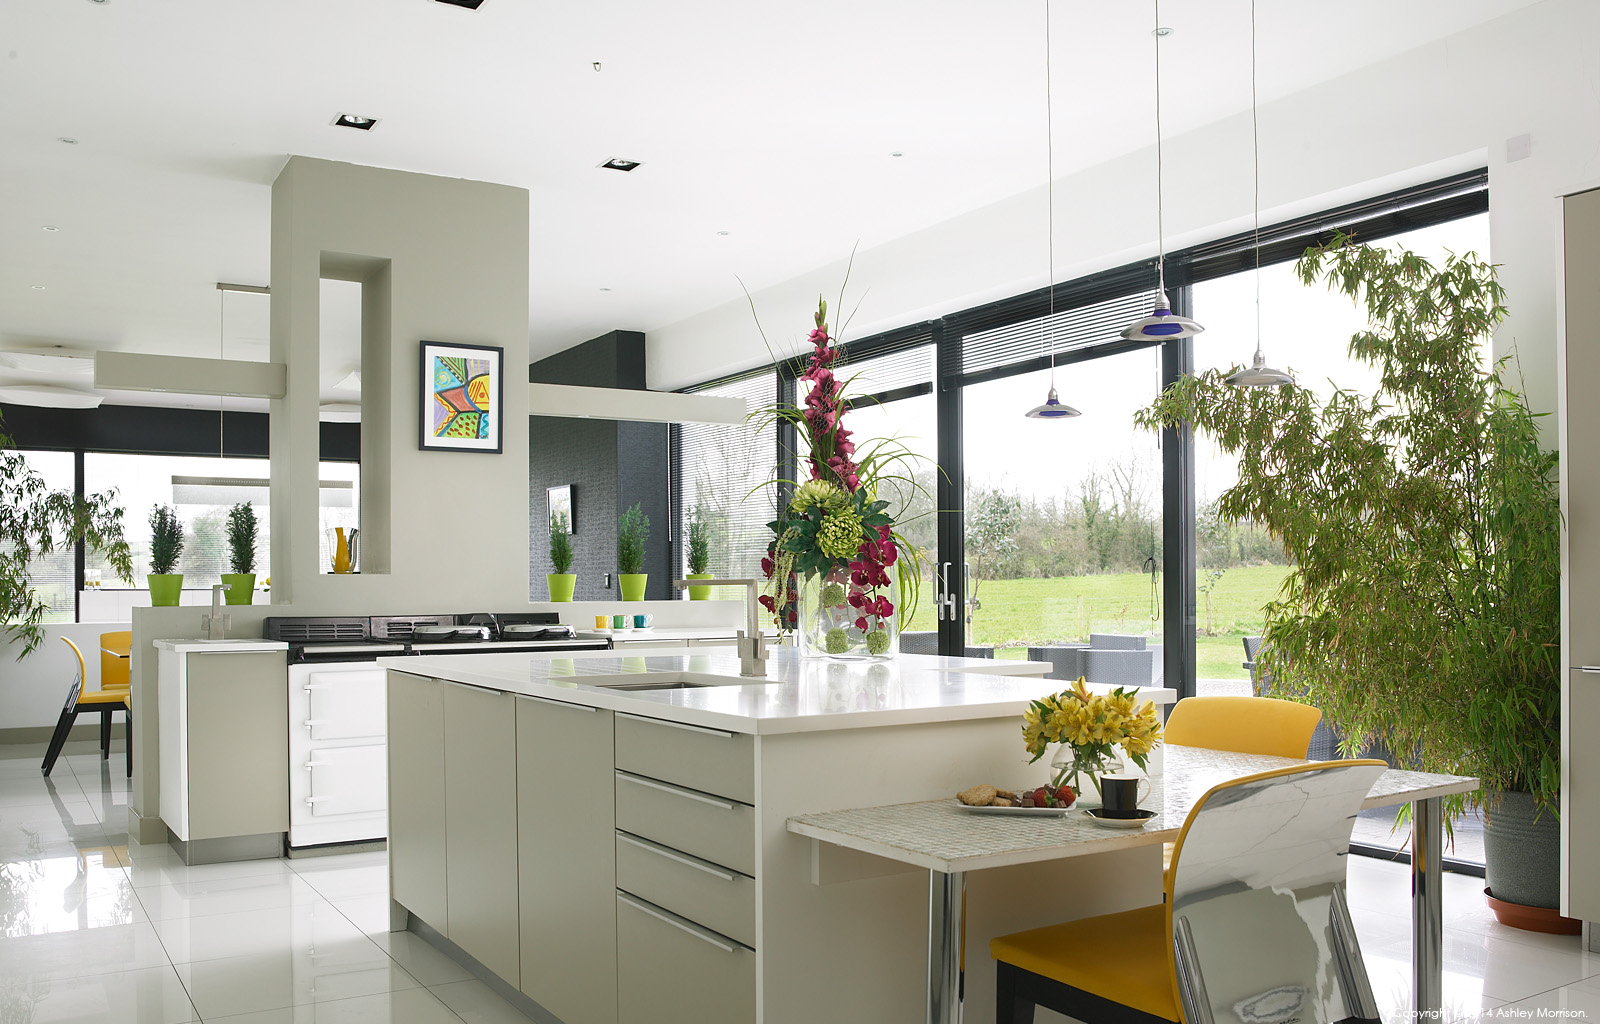 The kitchen in Fiona and Brian Shiells' architectural new build house near Dungannon in County Tyrone.